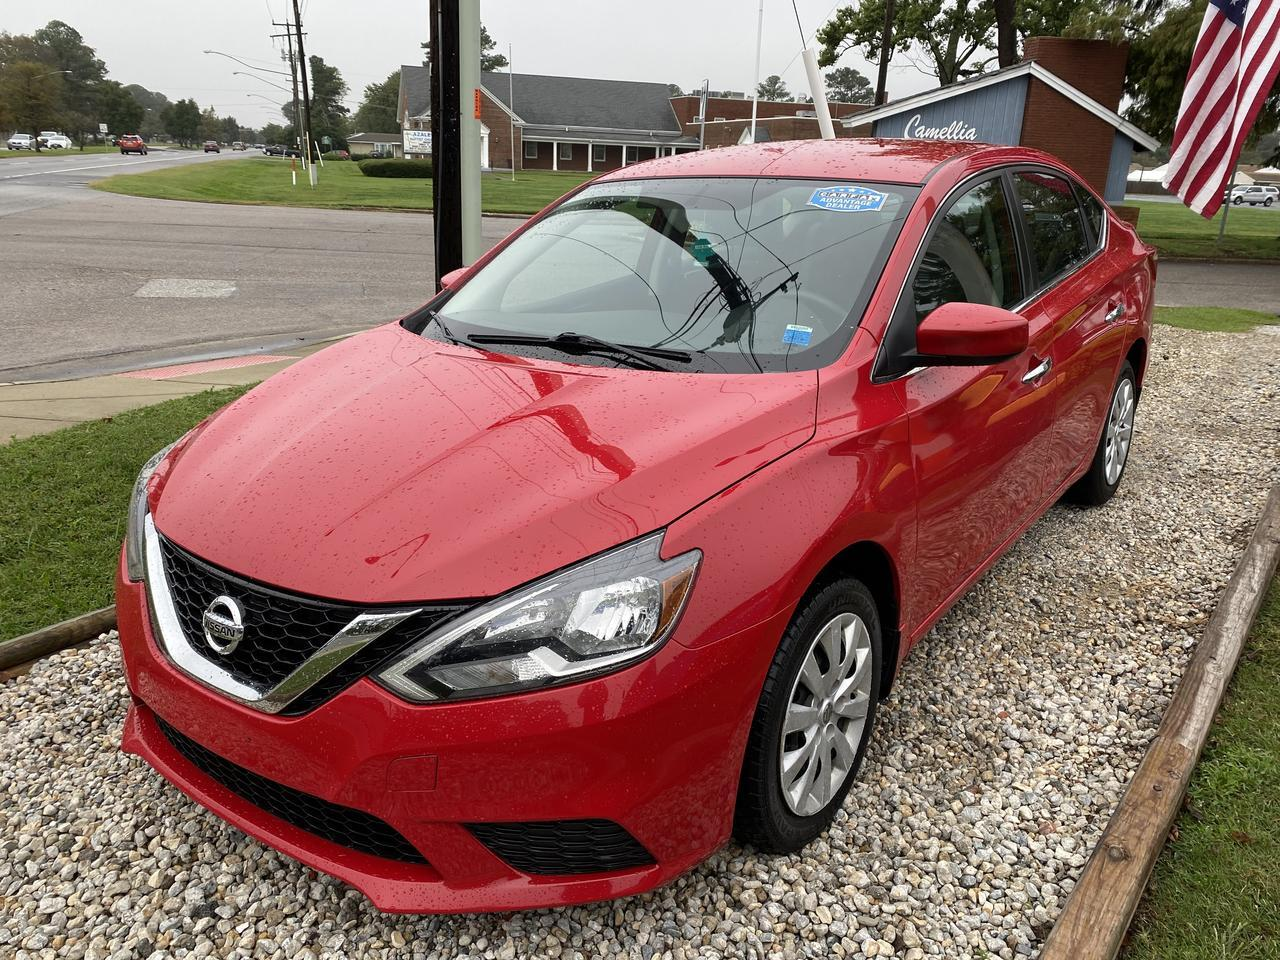 2017 NISSAN SENTRA SV, WARRANTY, BACKUP CAM, PARKING SENSORS, BLUETOOTH, AUX/USB PORT, SIRIUS RADIO, 1 OWNER! Norfolk VA